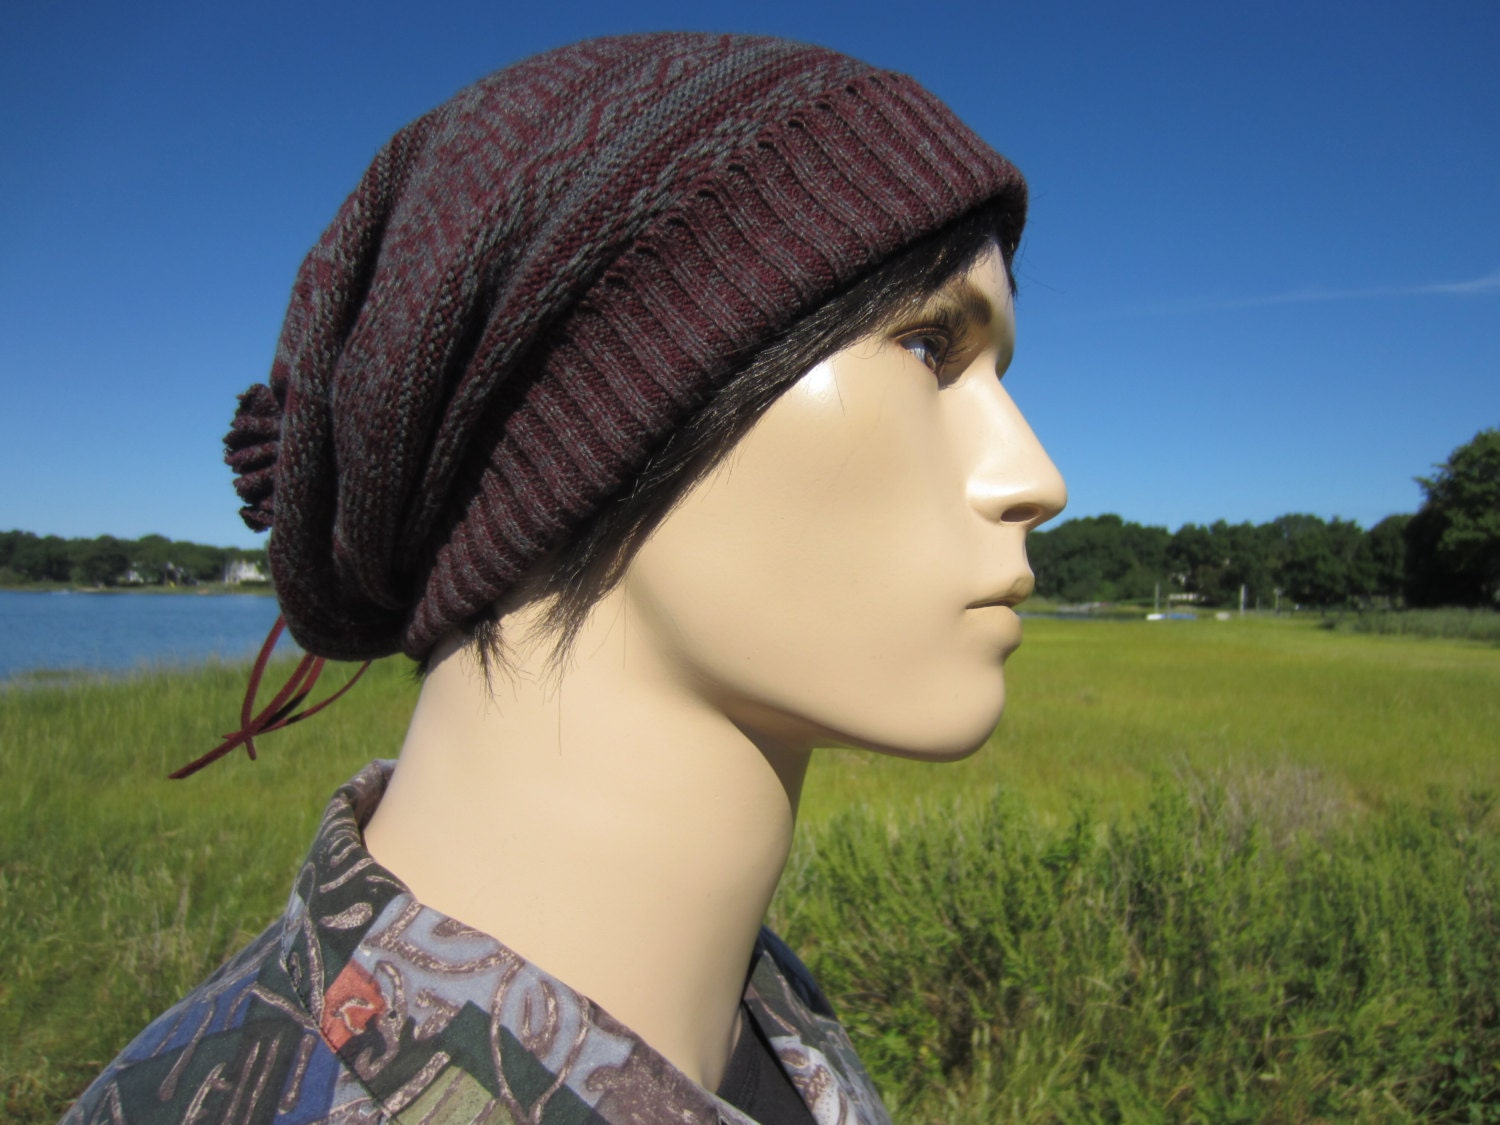 Fair Isle Knit Hat Big Slouchy Beanie Stocking Cap Burgundy   Gray Cotton  Tie Back Oversized Baggy Tam for Men A1638 0e63bb0d2d4